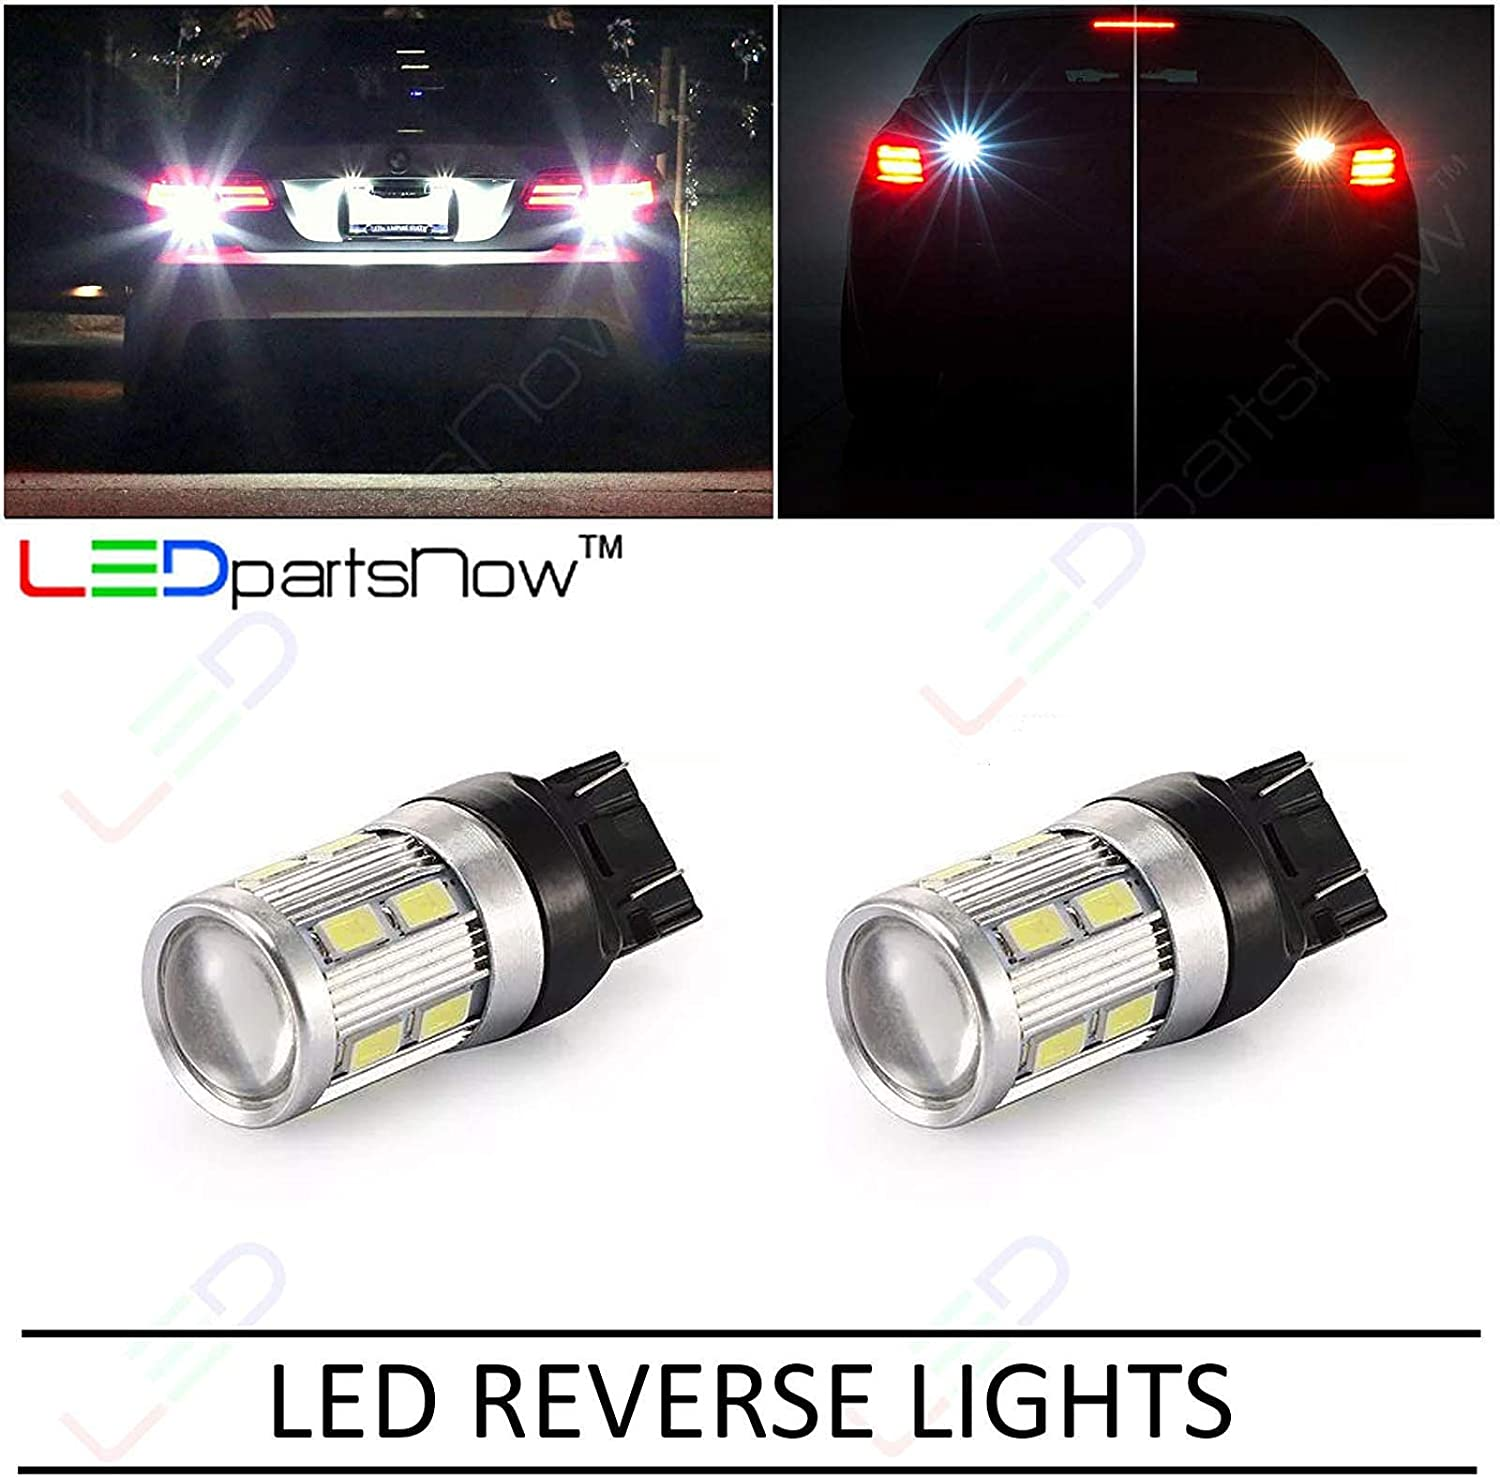 LEDpartsNow WHITE LED Exterior Back Up Reverse Lights Replacement for 2007-2014 Chevy Chevrolet Tahoe 2 Bulbs 992 7440NA 7440NA 7440 7440ST 7440LL 7441